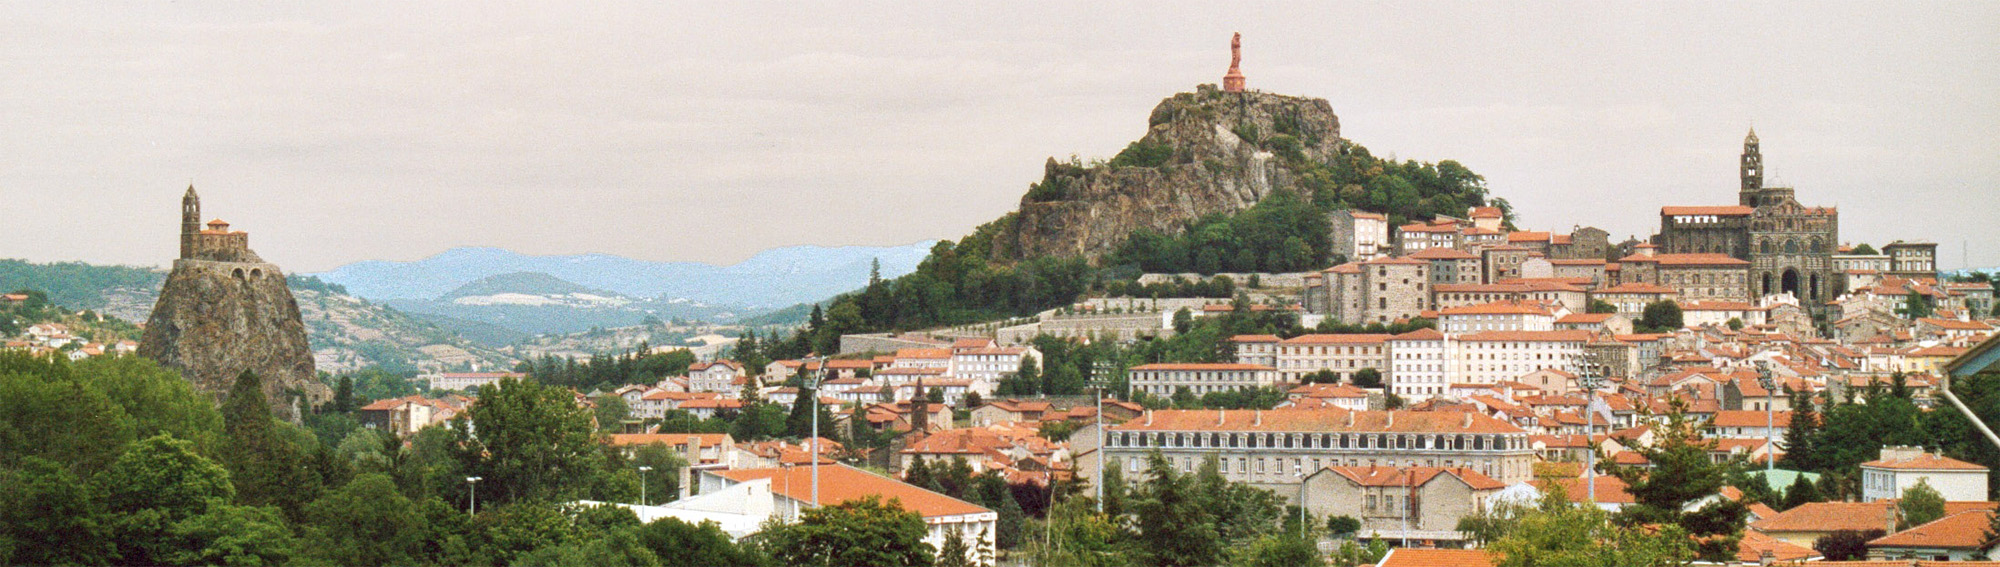 le puy en velay travel information facts history